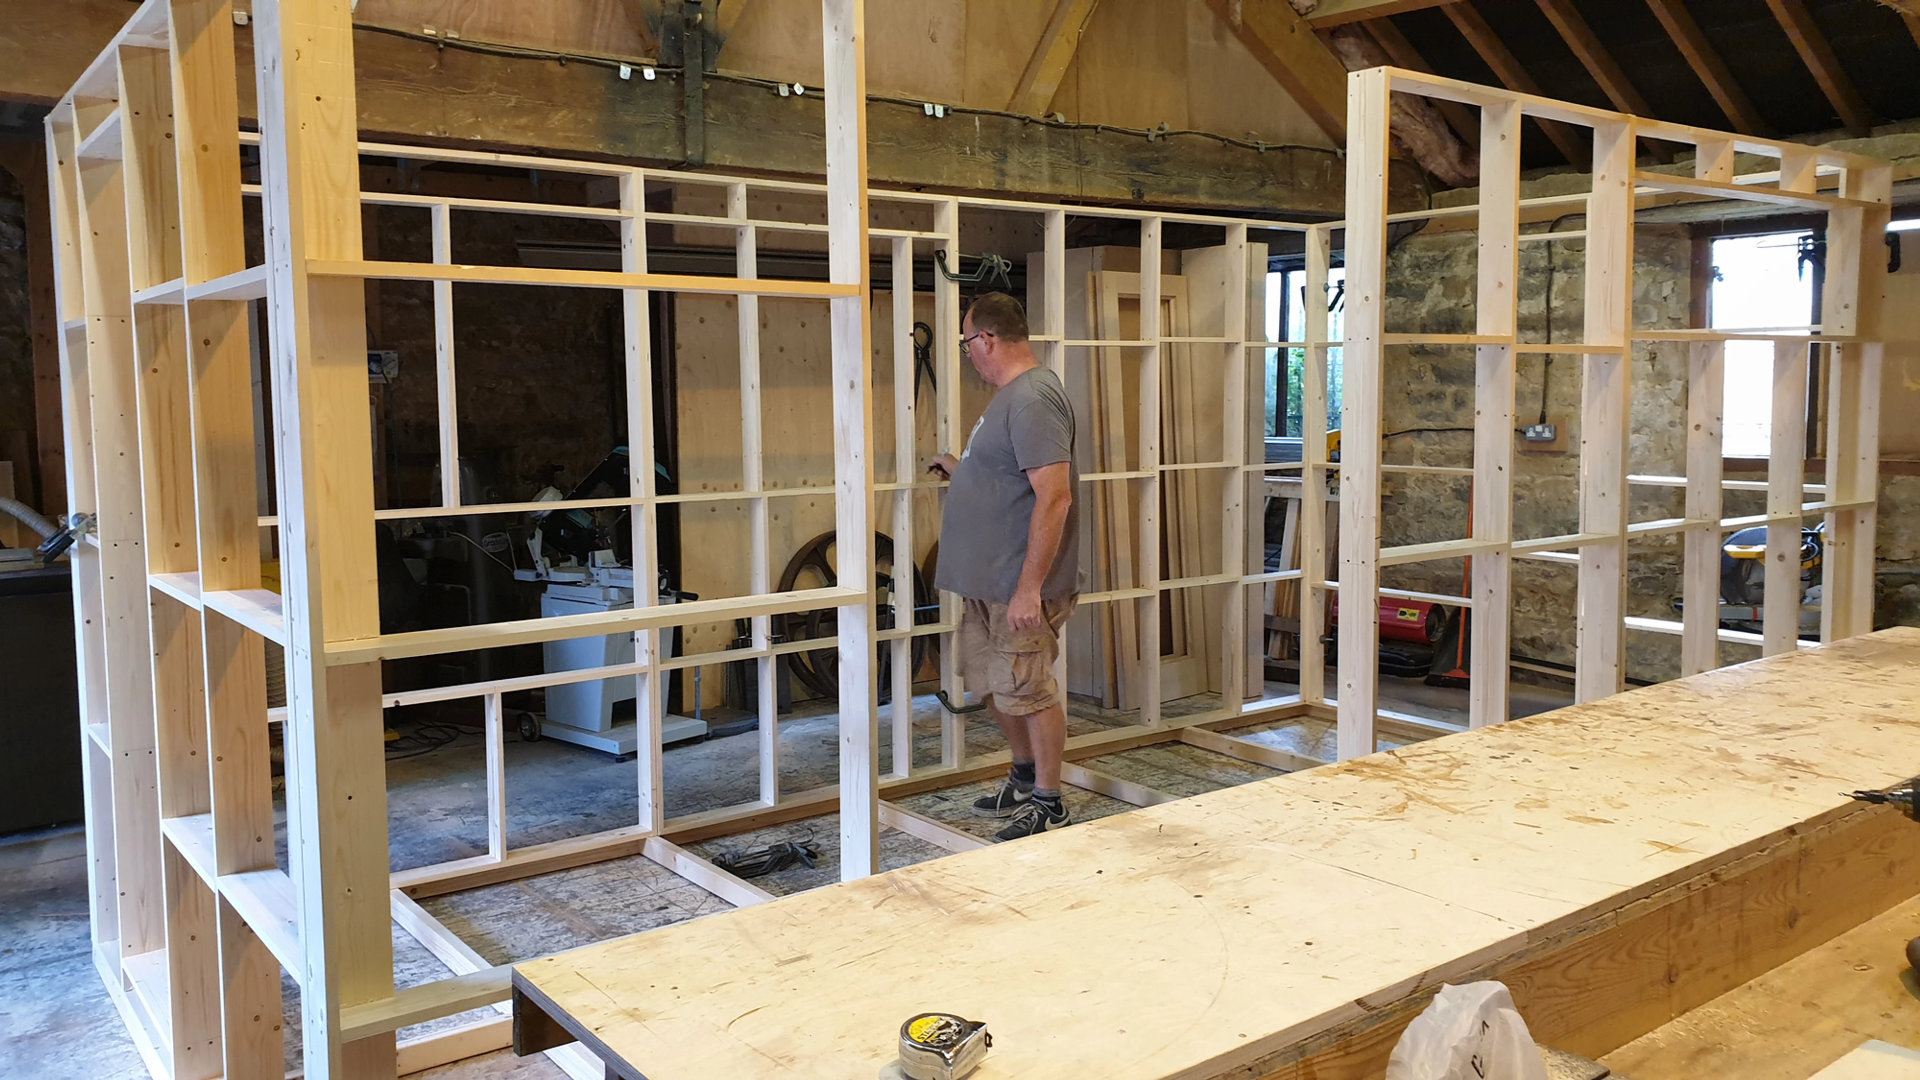 David Holland in the DSH workshop building the shepherd hut